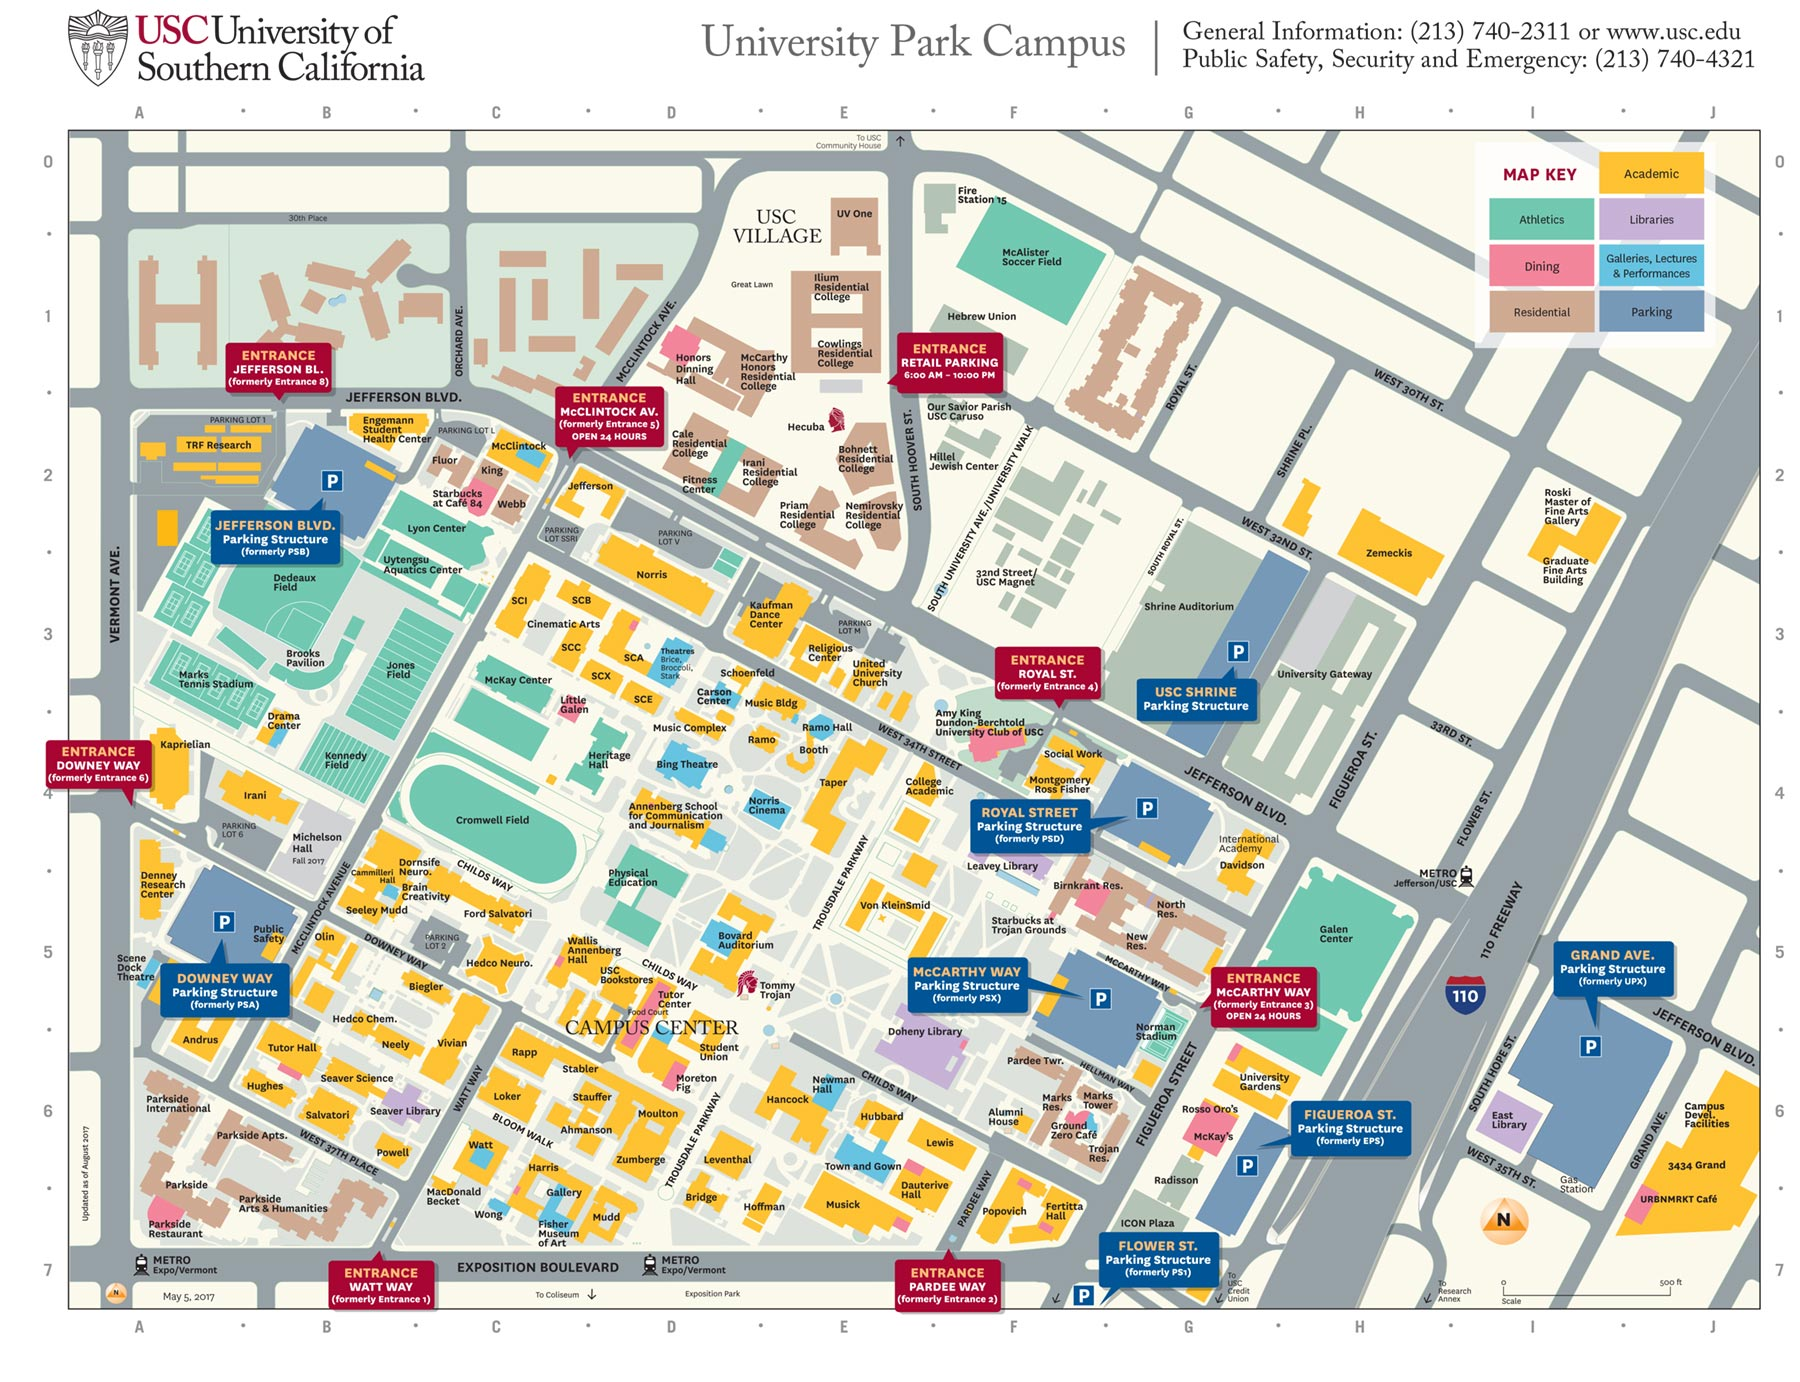 Usc Parking Map USC University Park Campus parking structures, entrances get new